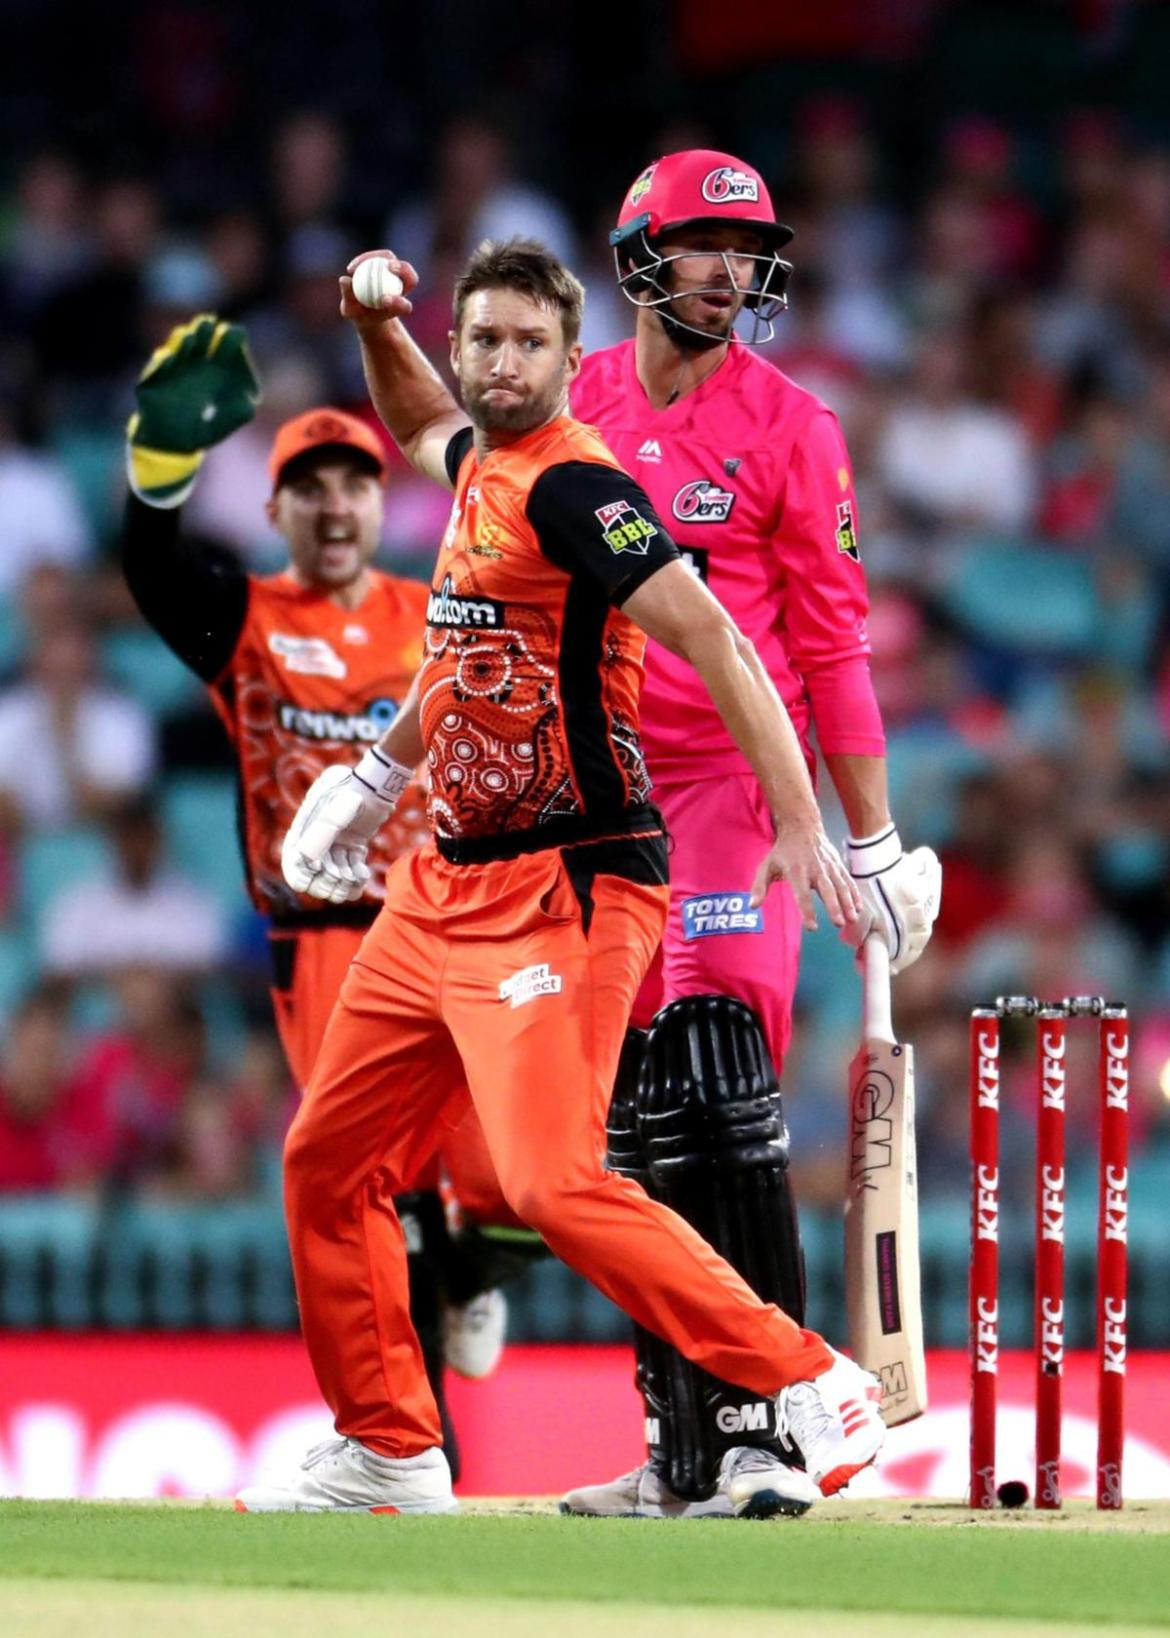 SYDNEY, AUSTRALIA - FEBRUARY 06: Andrew Tye of the Scorchers runs out Josh Philippe of the Sixers during to the Big Bash League Final match between the Sydney Sixers and the Perth Scorchers at the Sydney Cricket Ground on February 06, 2021 in Sydney, Australia. (Photo by Brendon Thorne/Getty Images)